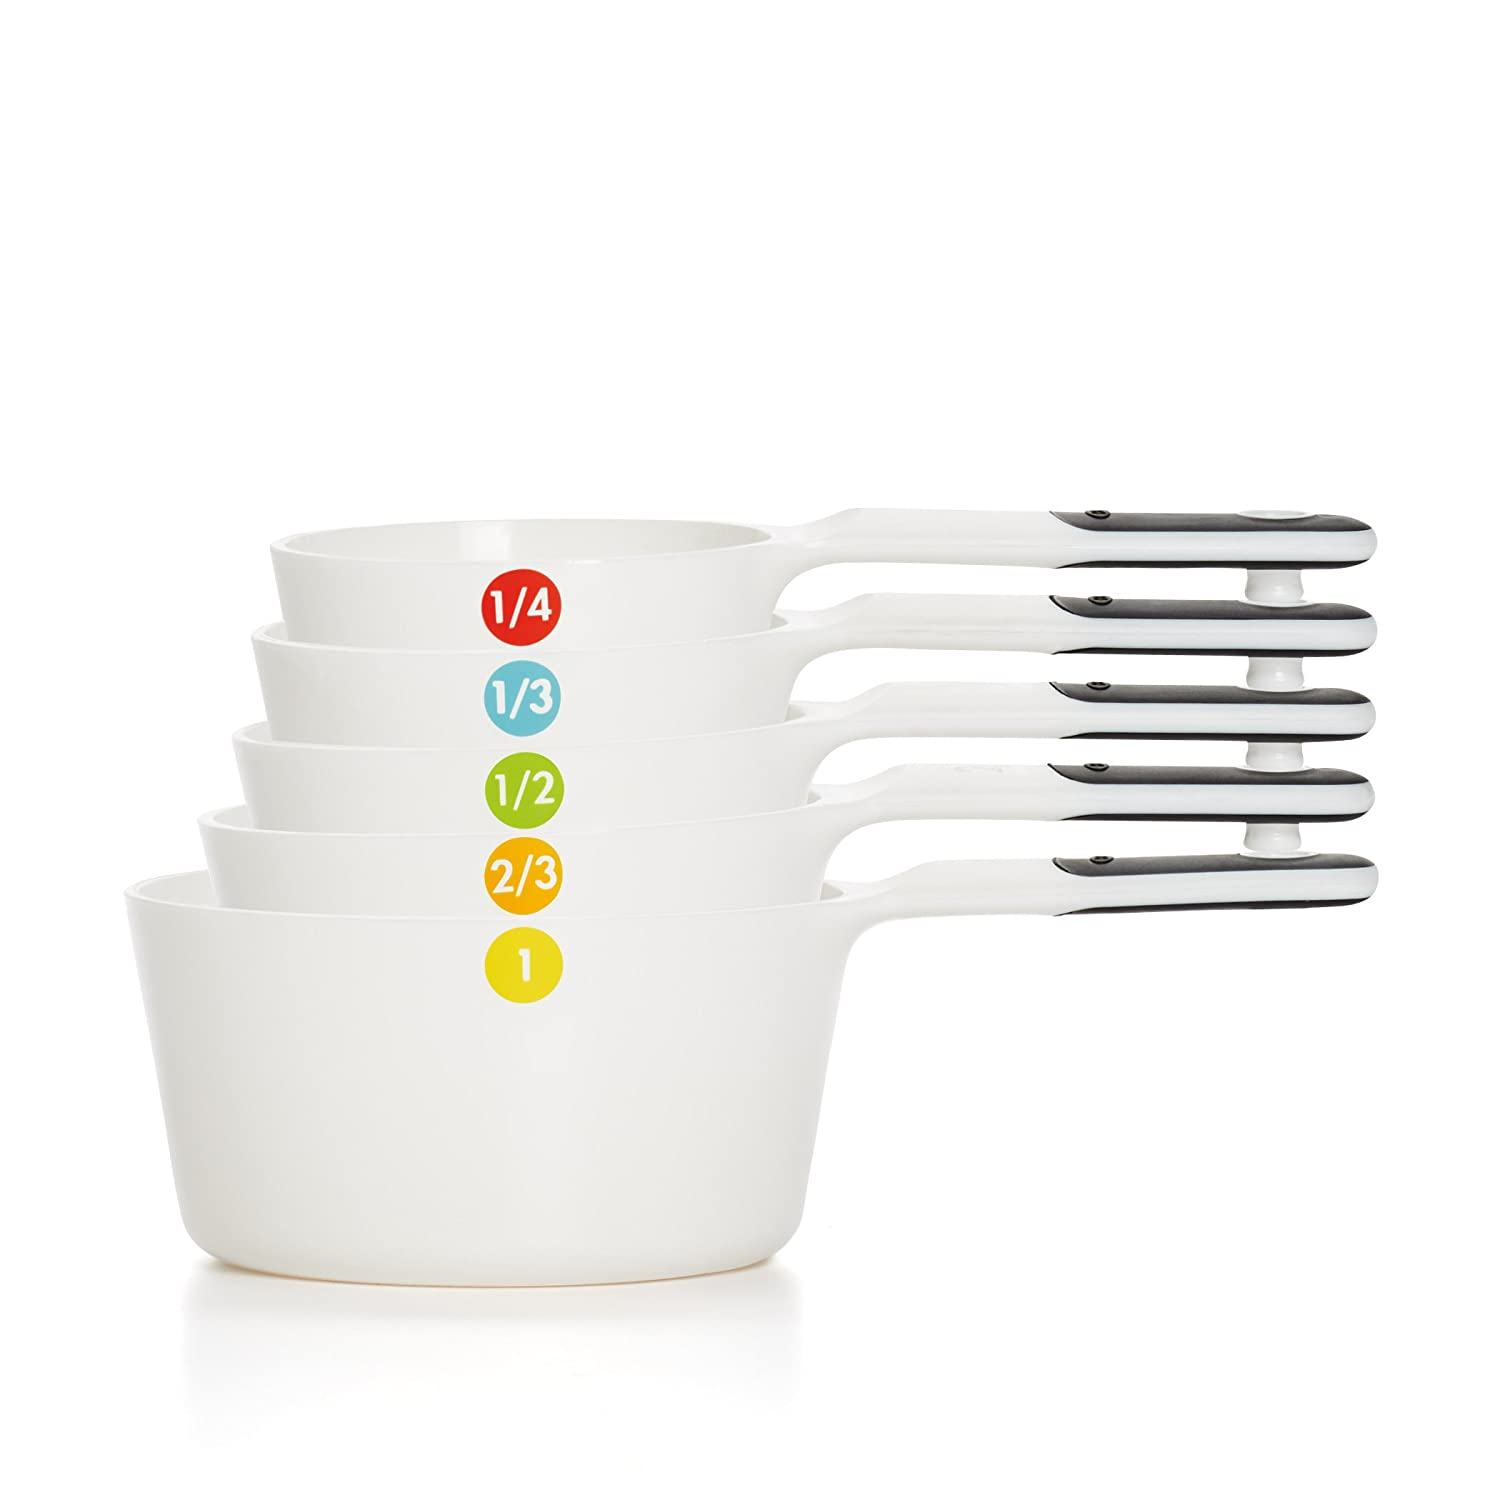 OXO Good Grips Plastic Measuring Cups, 6-Piece, White 11111102